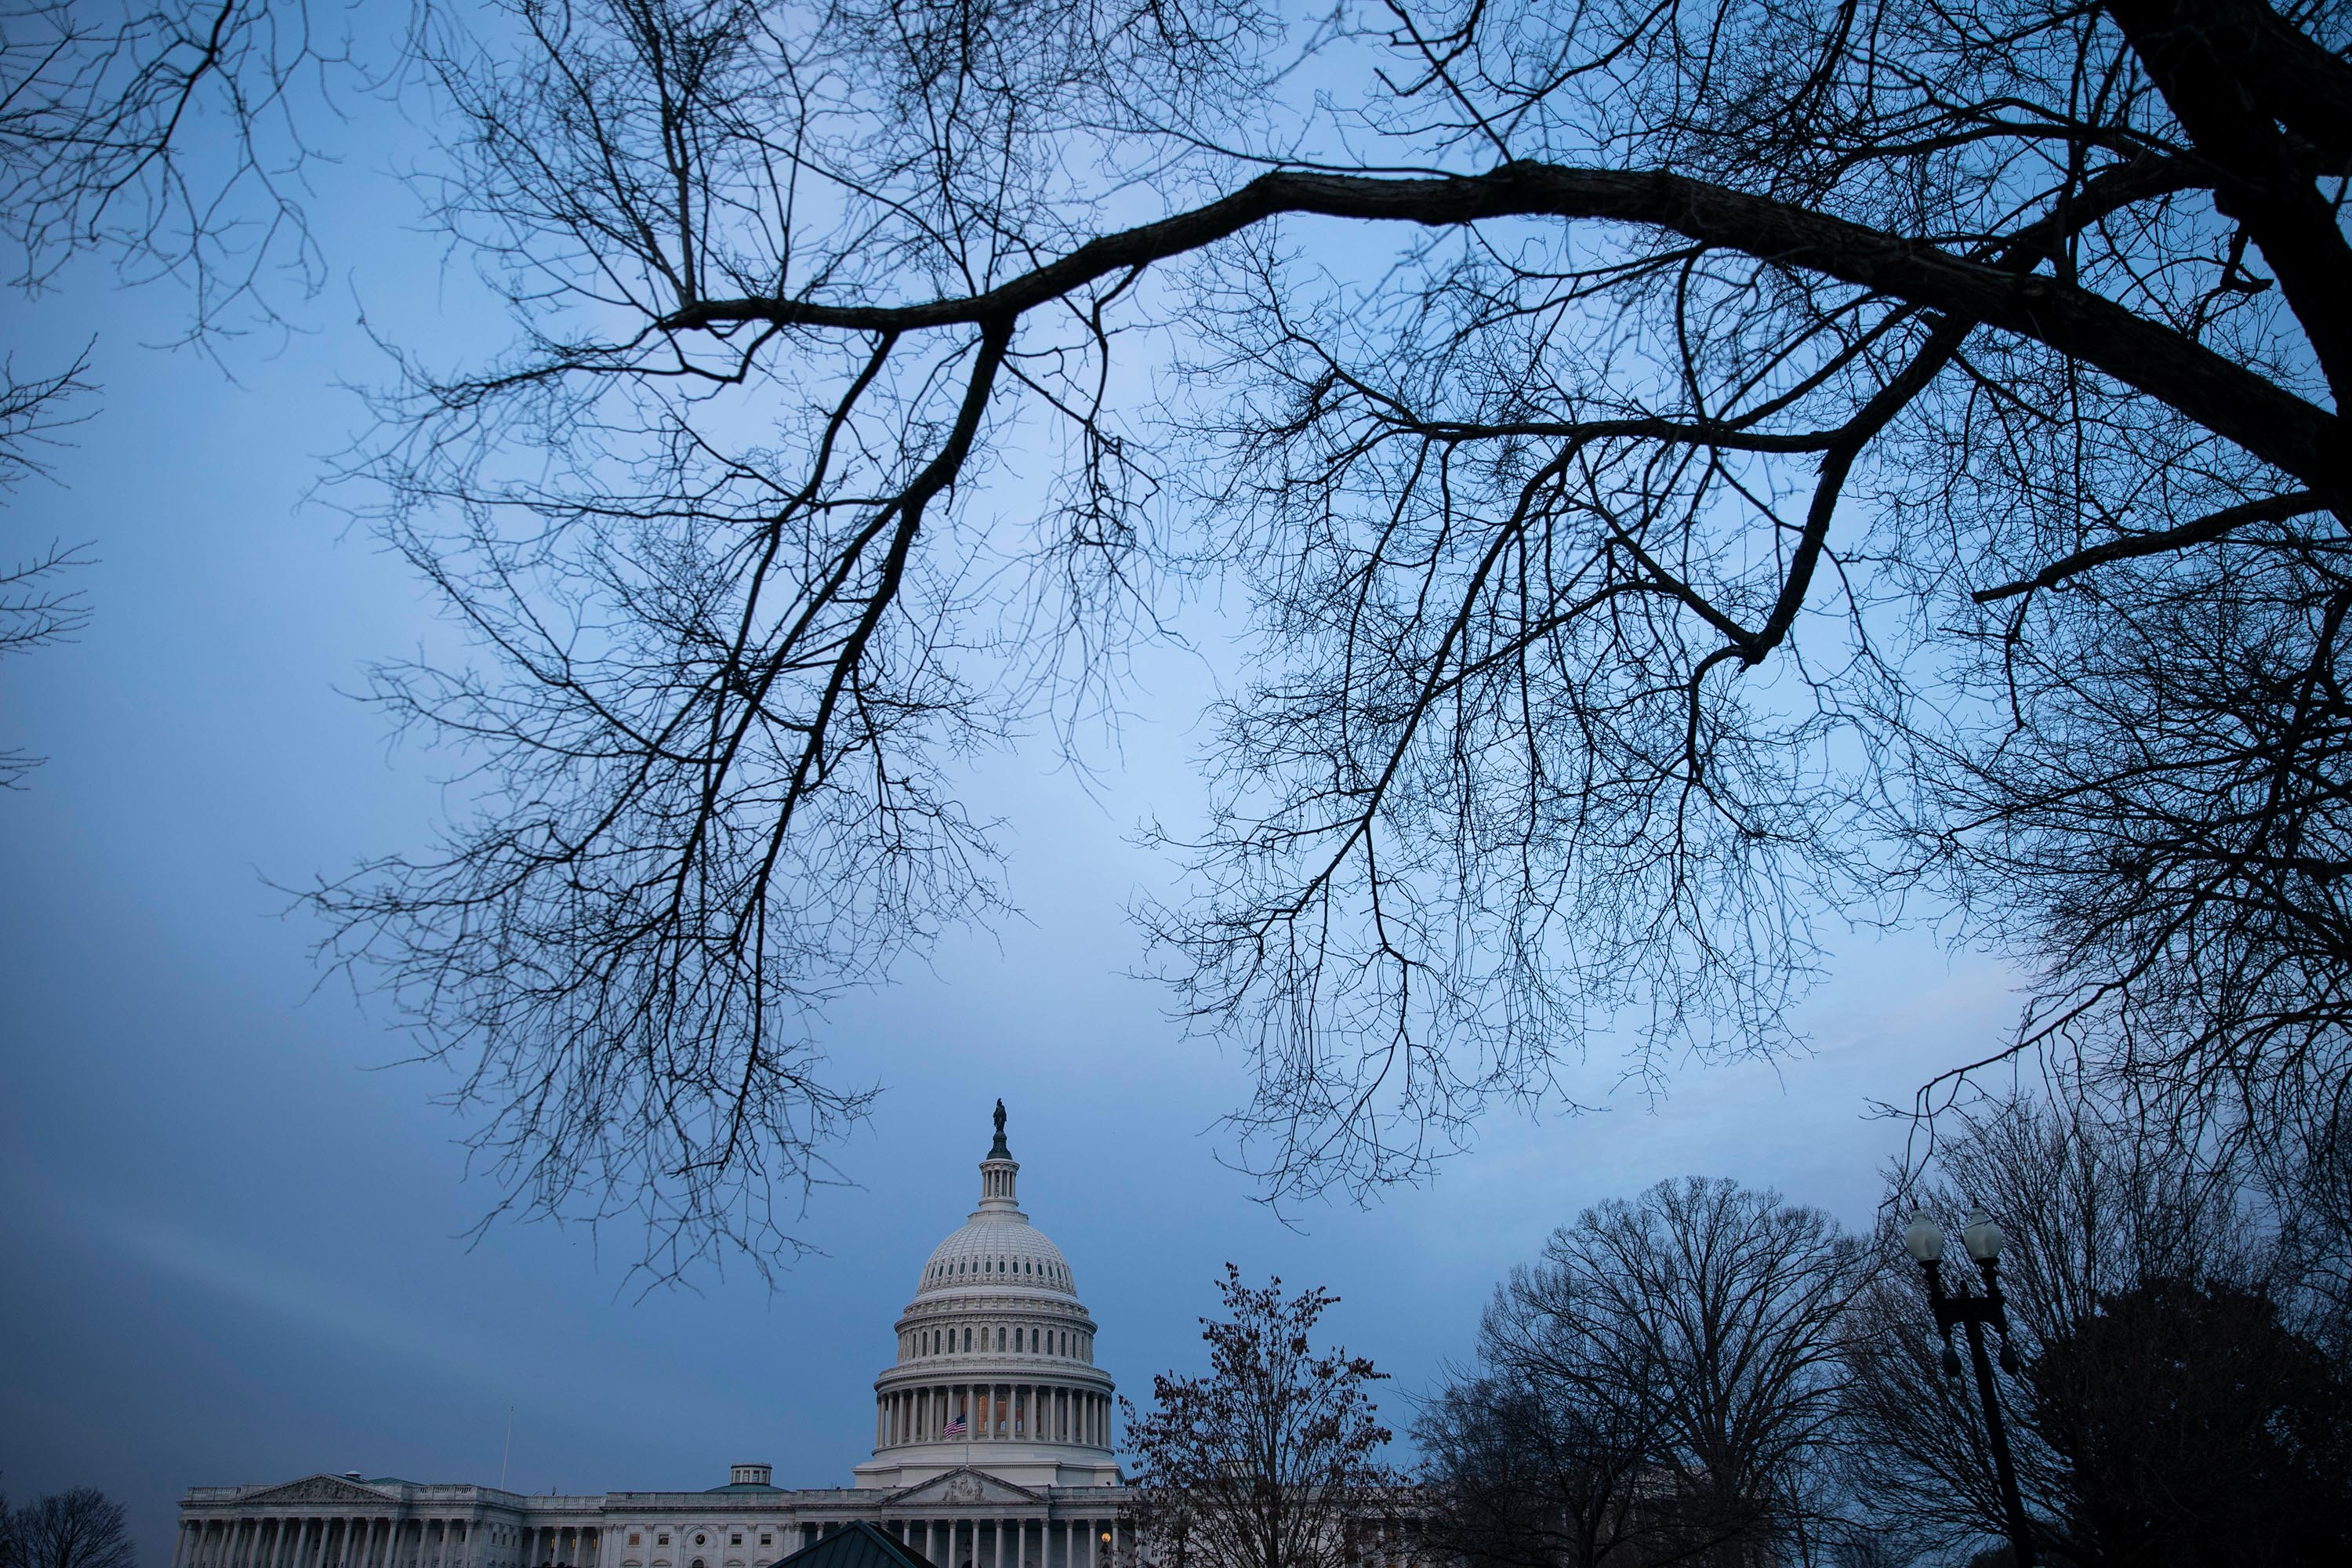 Fear and mistrust loom large in the Capitol in the wake of January 6